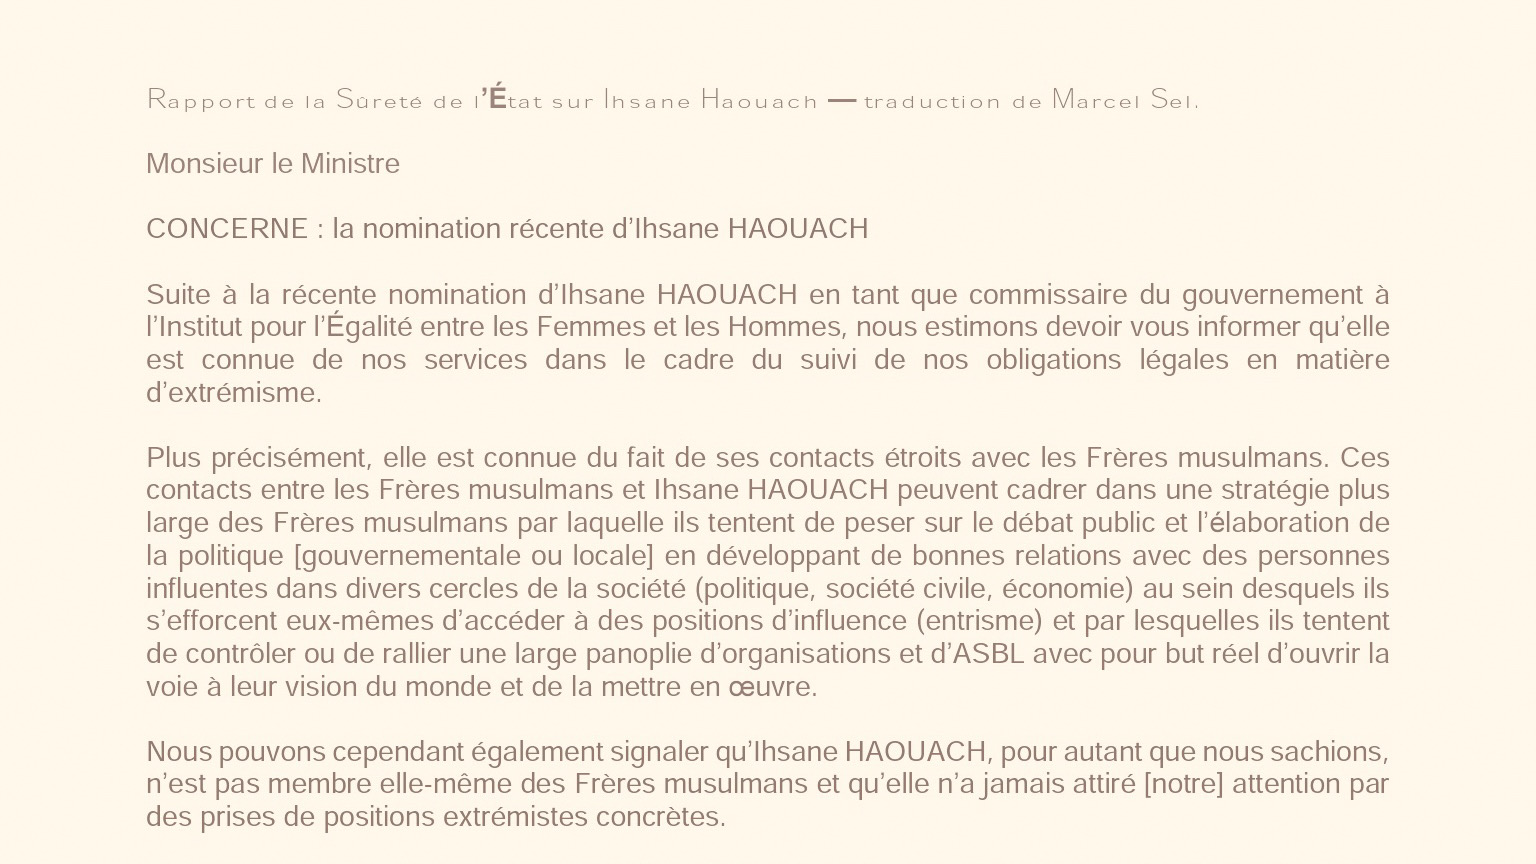 Belgian State Security Report on Ihsane Haouach's links with the Muslim Brotherhood